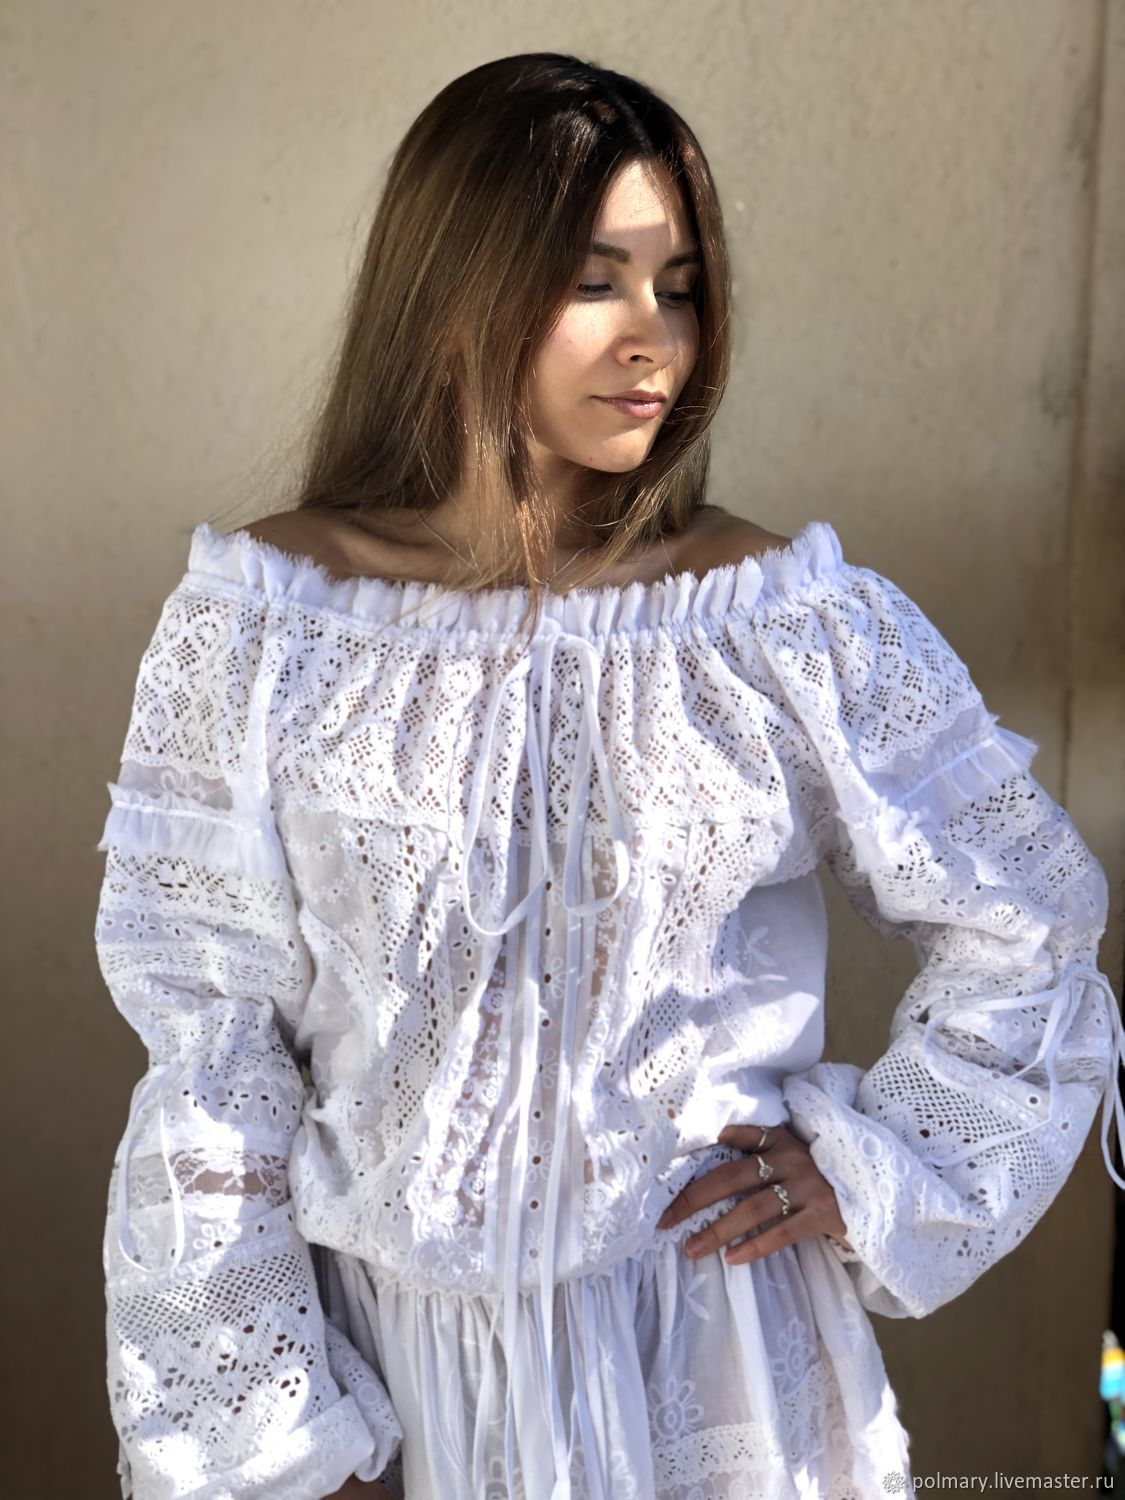 Dress of white embroidery and lace Bohemian 'Odette', Dresses, Tashkent,  Фото №1